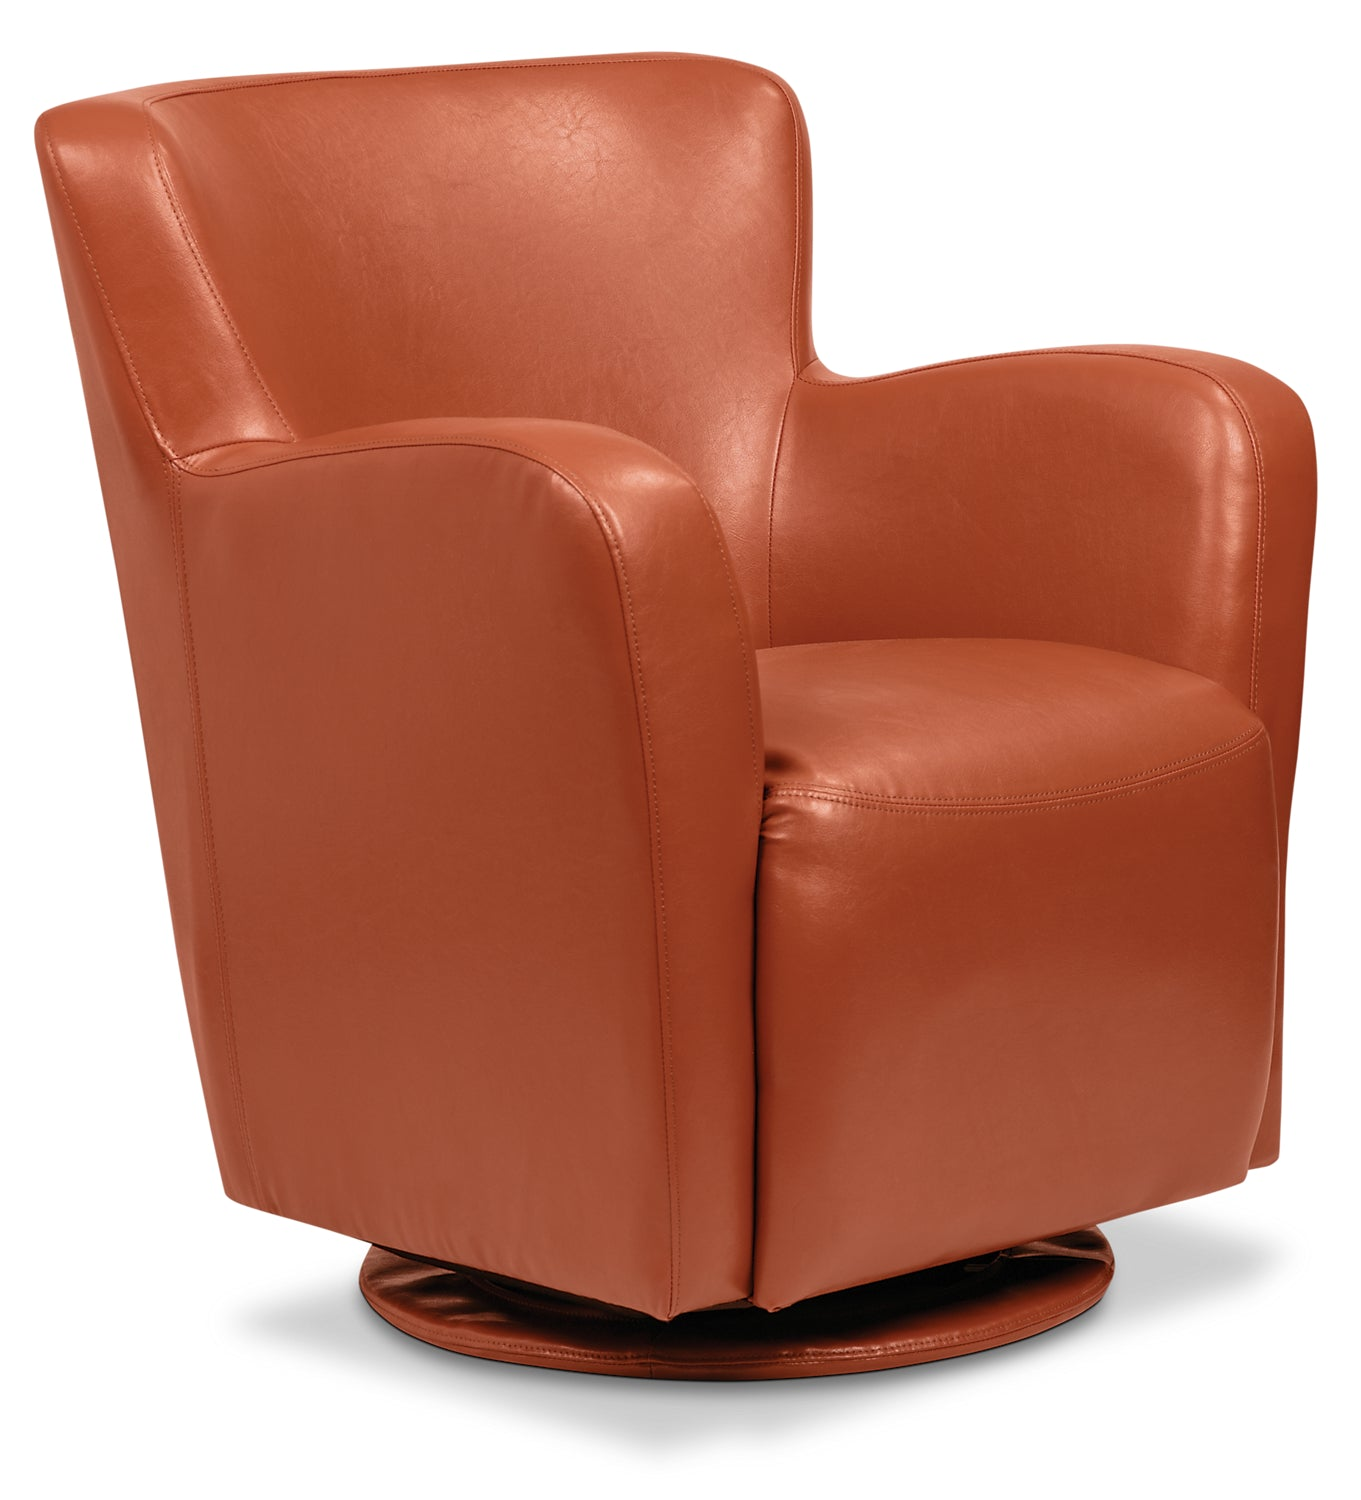 Pleasing Zello Bonded Leather Swivel Accent Chair Spice Pdpeps Interior Chair Design Pdpepsorg